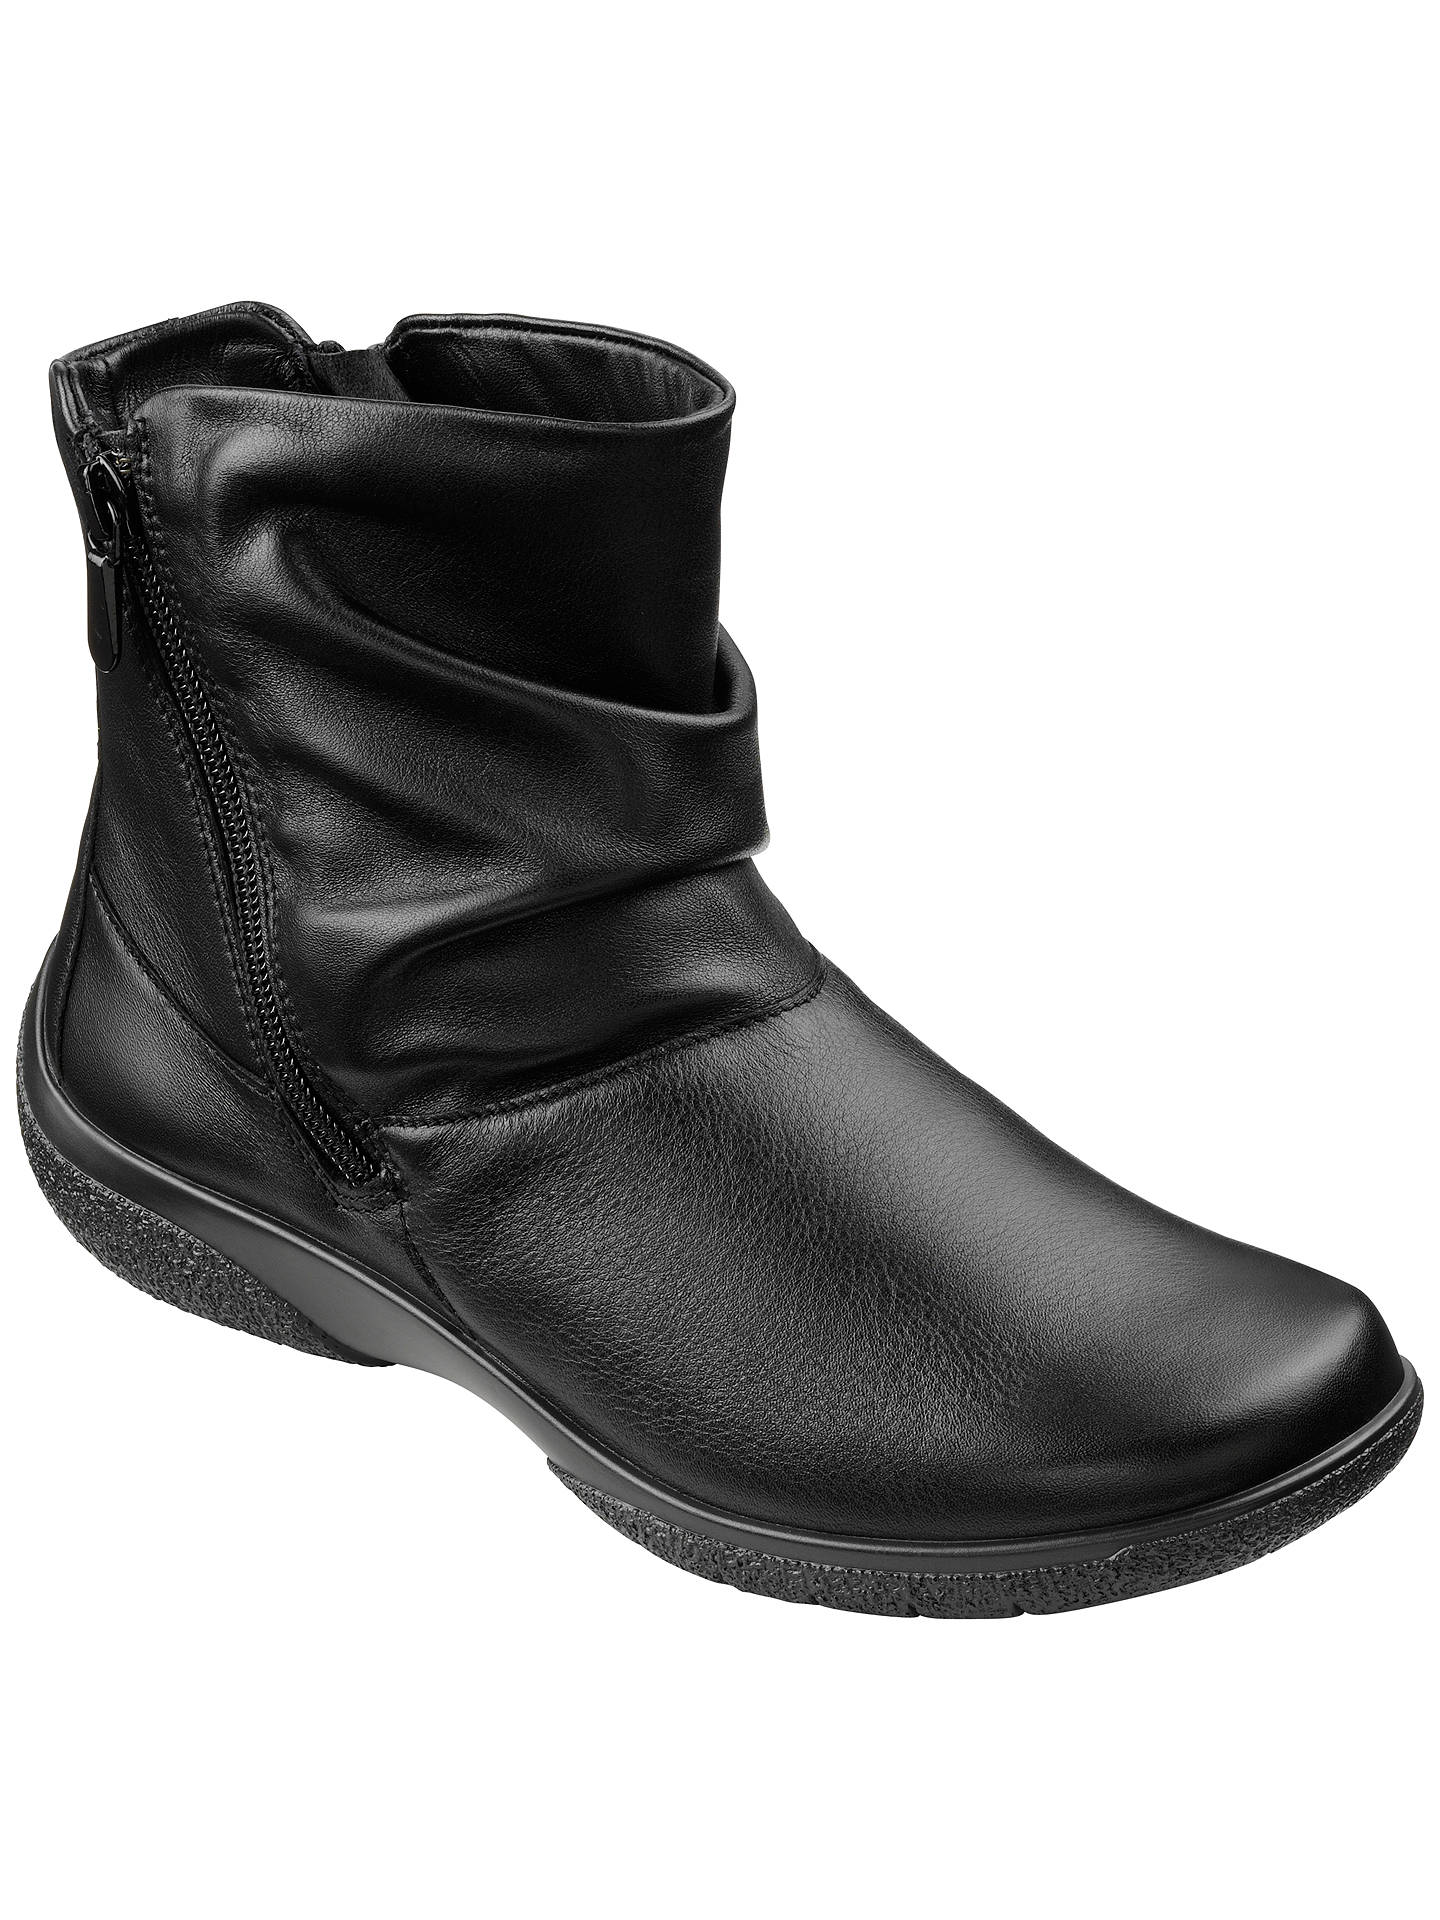 04743f5e452c5 Buy Hotter Made in England Whisper Leather Ankle Boots, Black, 3 Online at  johnlewis